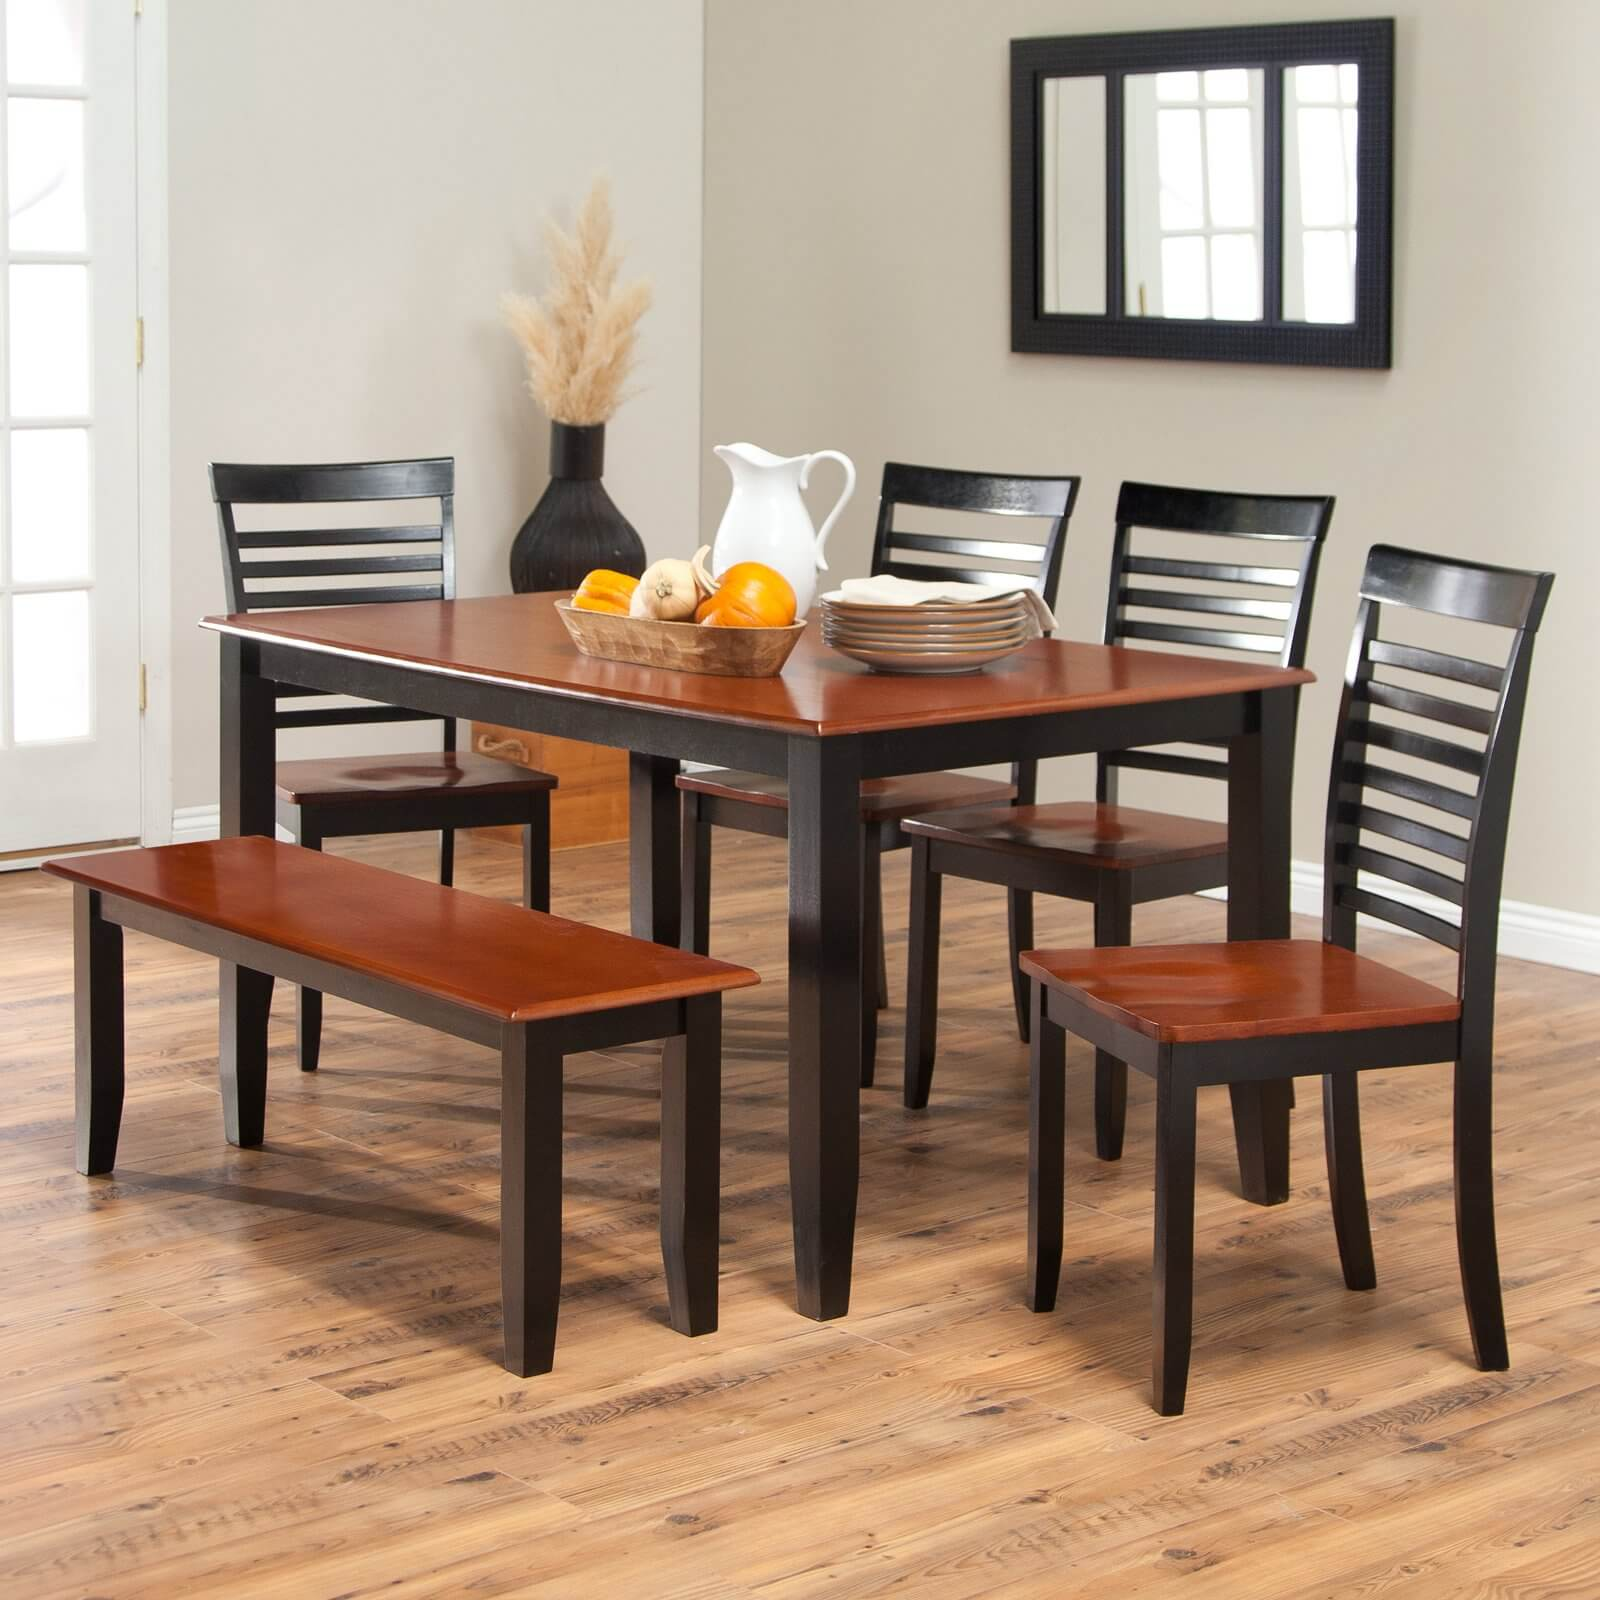 26 big small dining room sets with bench seating for Dining set with bench and chairs